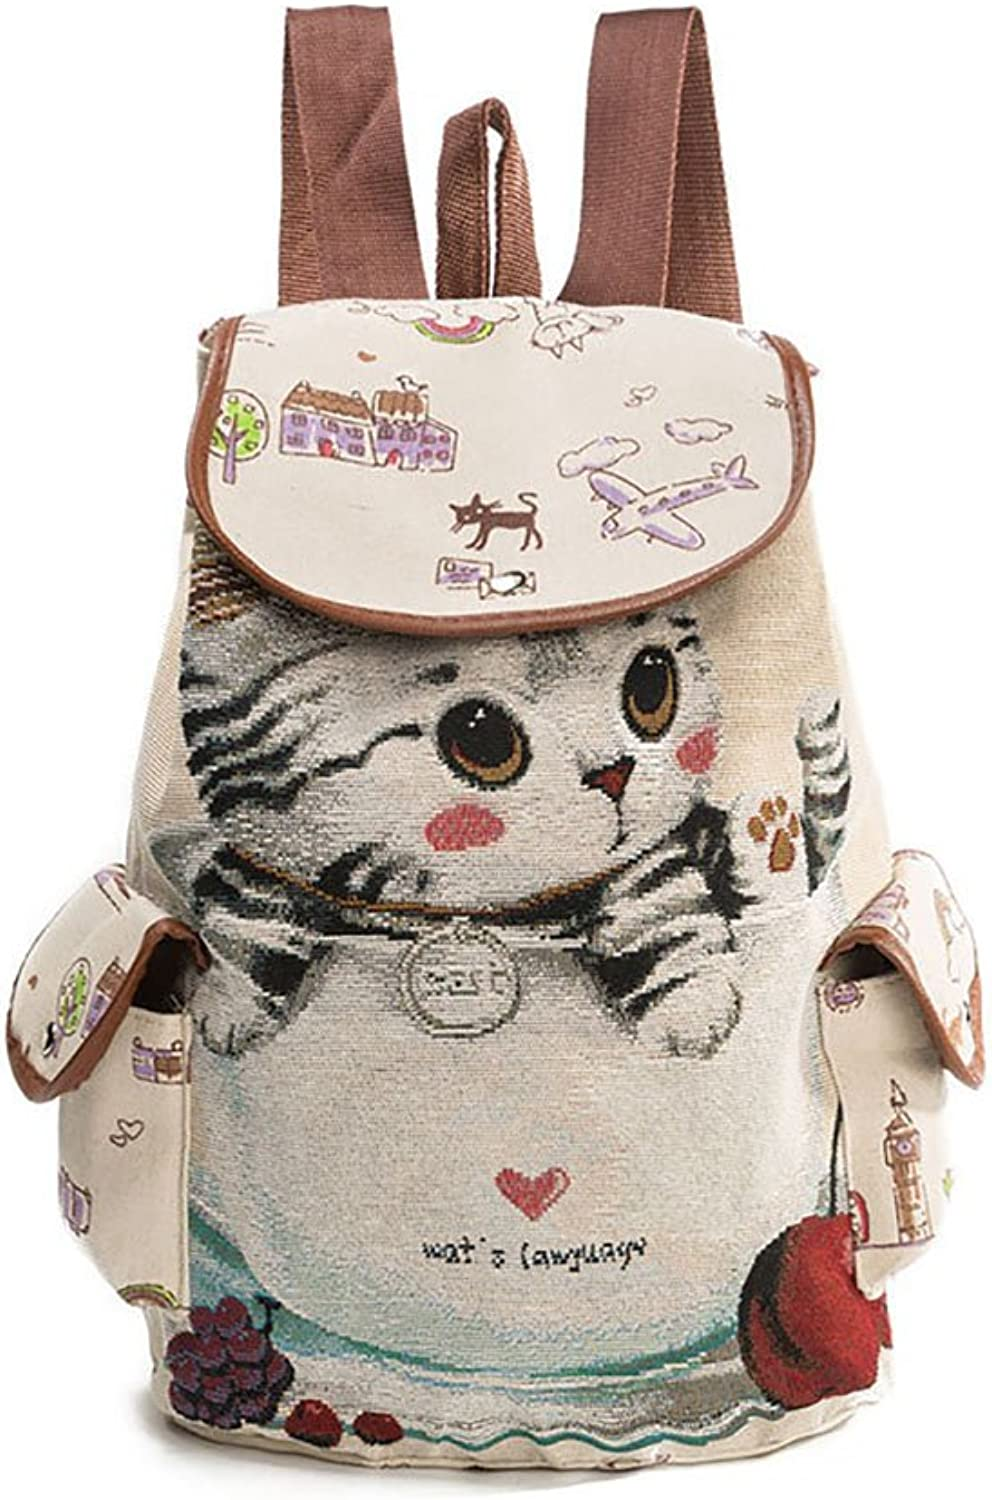 Women's Backpacks Casual Women's Rucksacks Trendy High School Students' Bags Cute Jacquard Embroidery Backpack (Pattern   A)